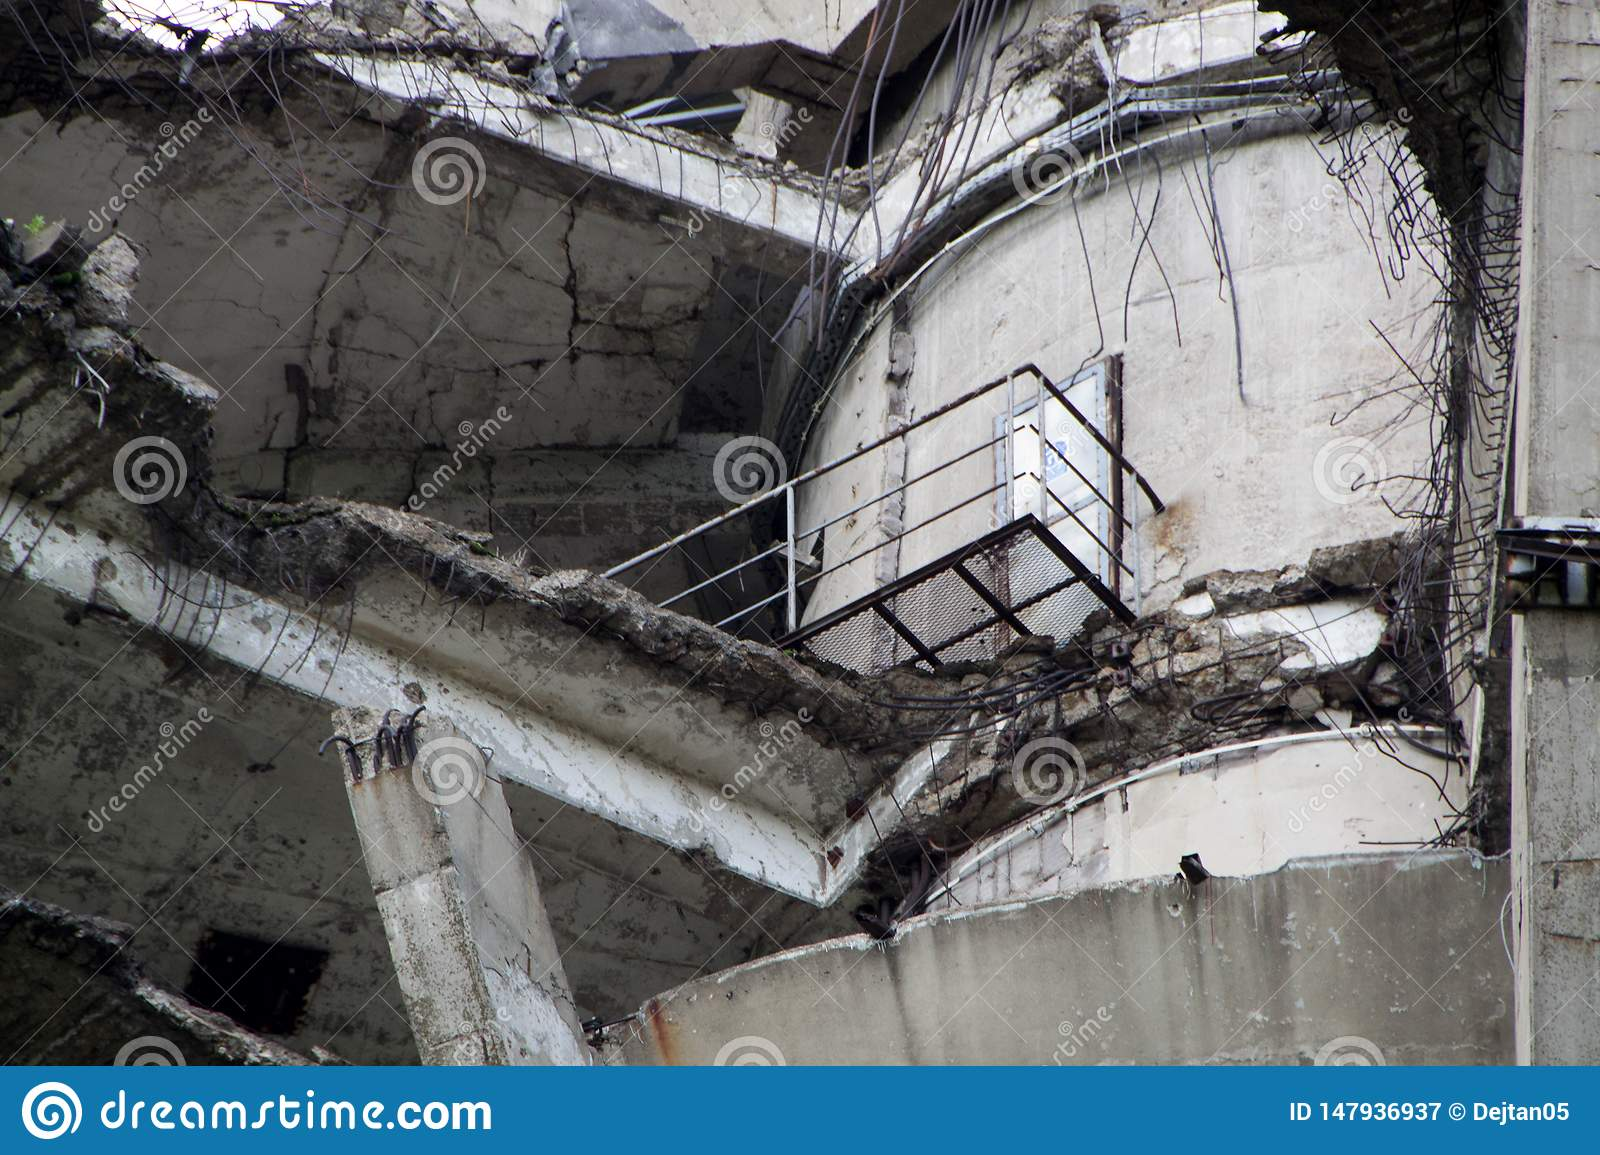 TV tower damaged in NATO bombing